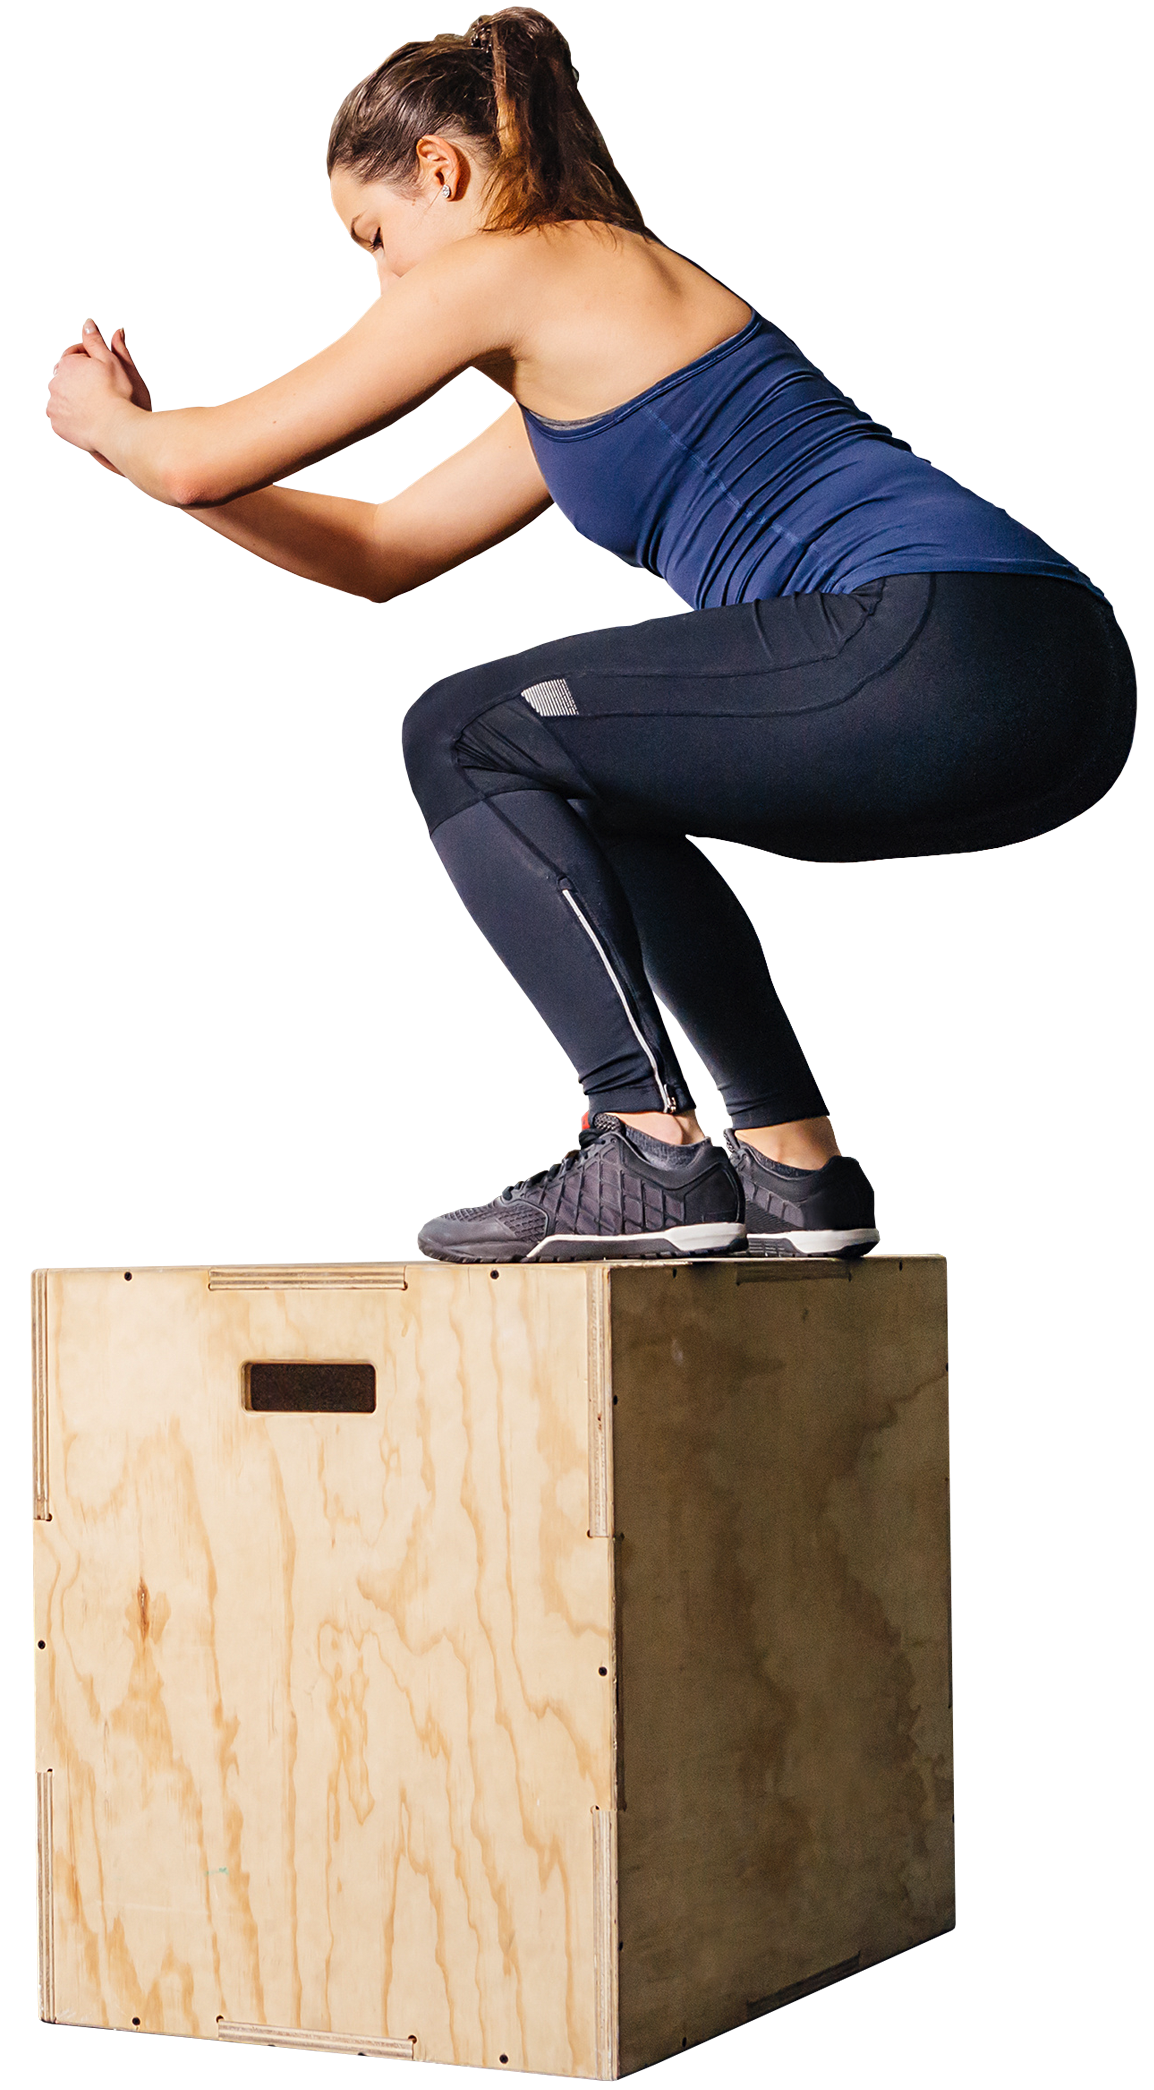 Do Some Box Jumps